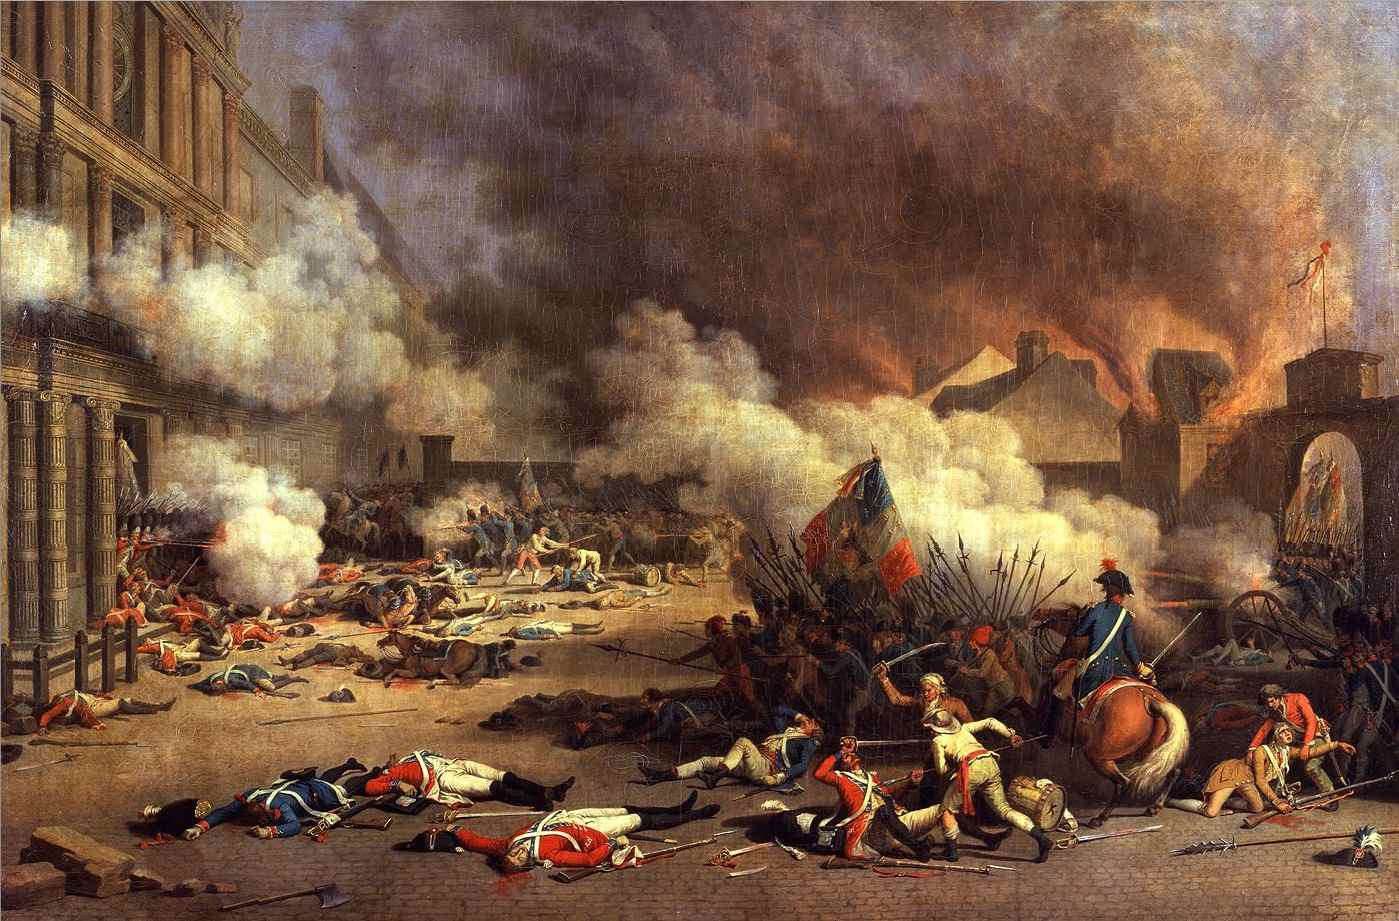 Painting of Storming of the Tuileries on 10. Aug. 1792 during the French Revolution